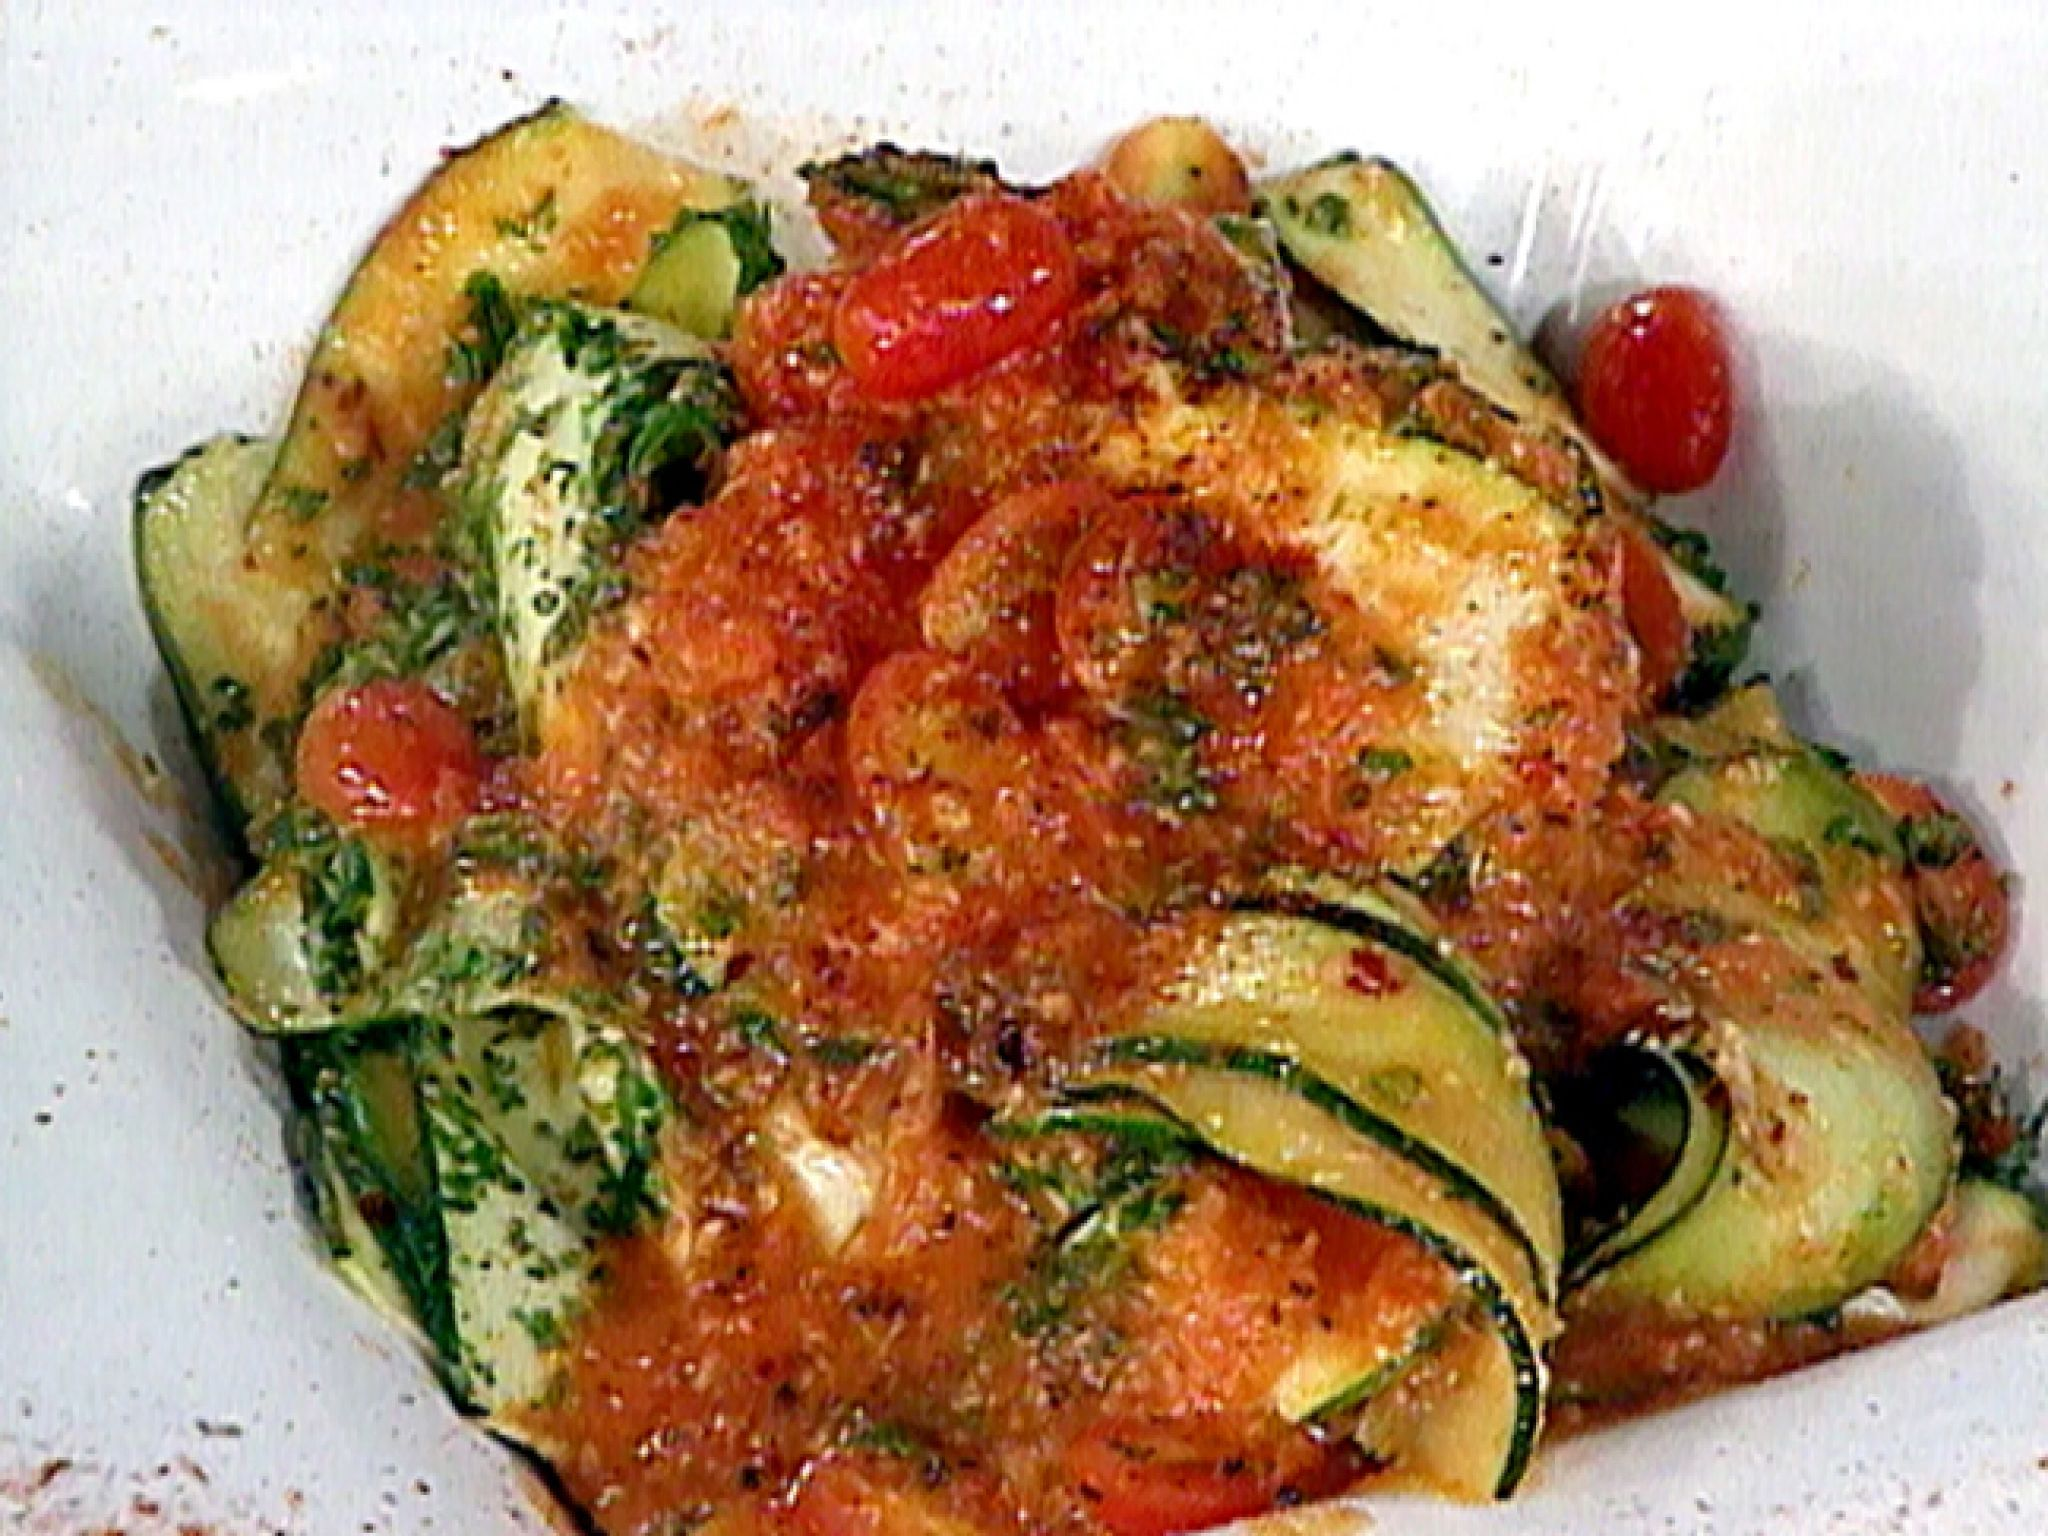 Zucchini pappardelle with fine herbs and tomato recipe from emeril zucchini pappardelle with fine herbs and tomato recipe from emeril lagasse via food network gf recipesvegetarian recipesdishes forumfinder Images